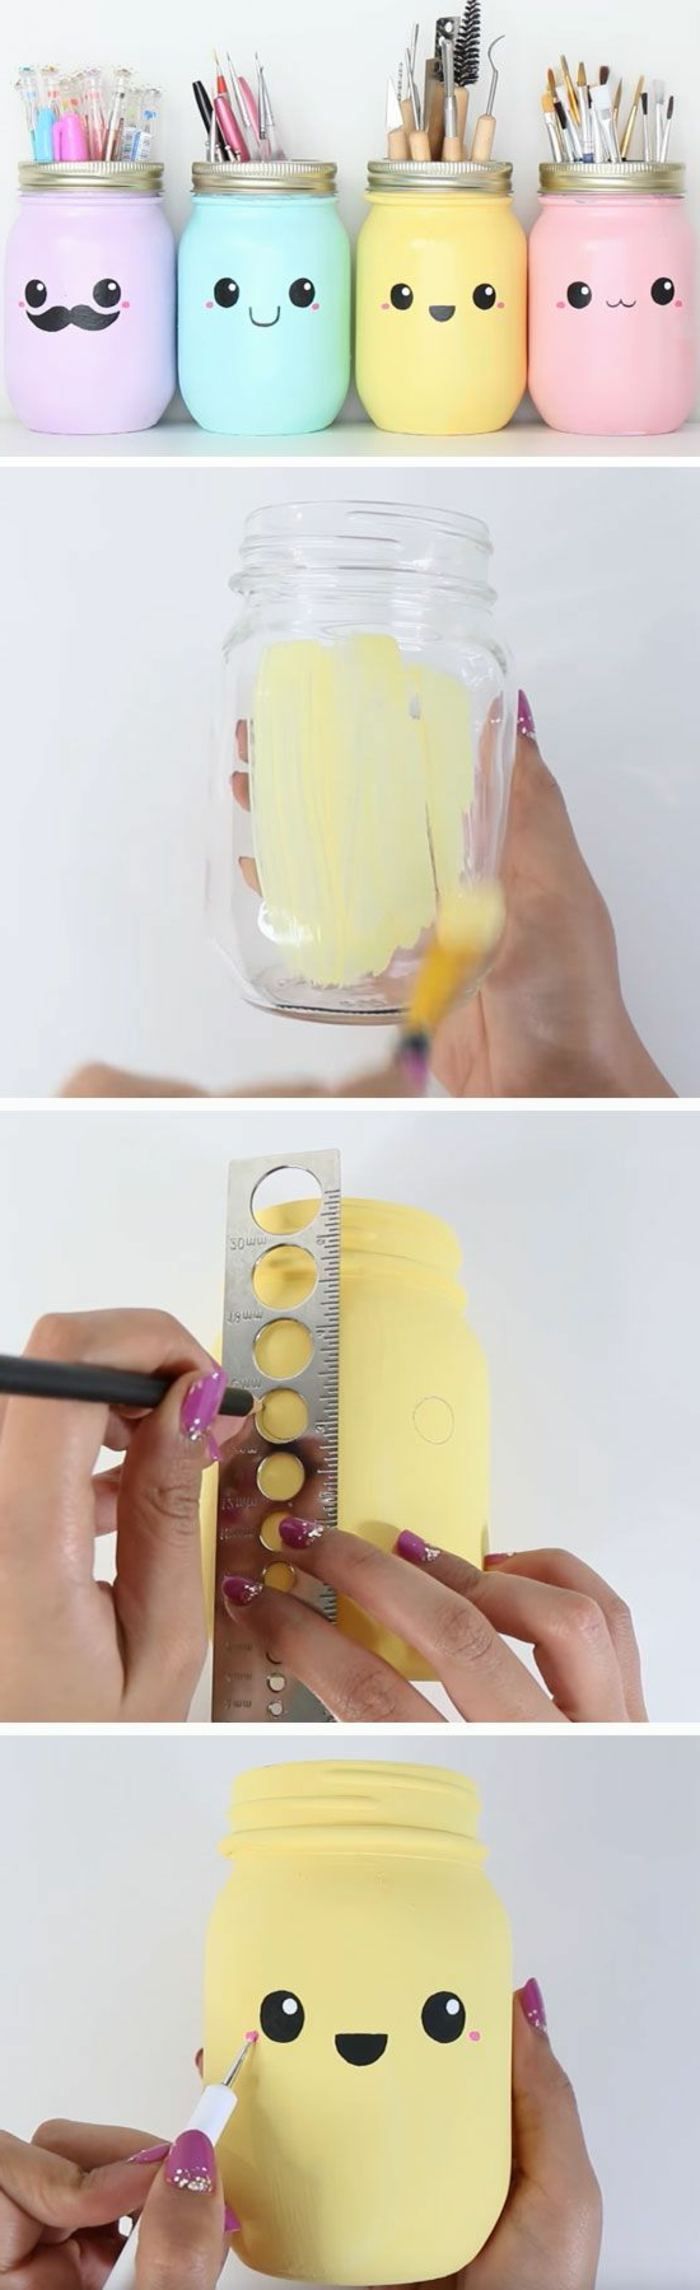 four mason jars, painted in pastel colors, pale purple and blue, yellow and pink, decorated with hand-drawn caroon faces, fun and easy crafts, making of process in three photos